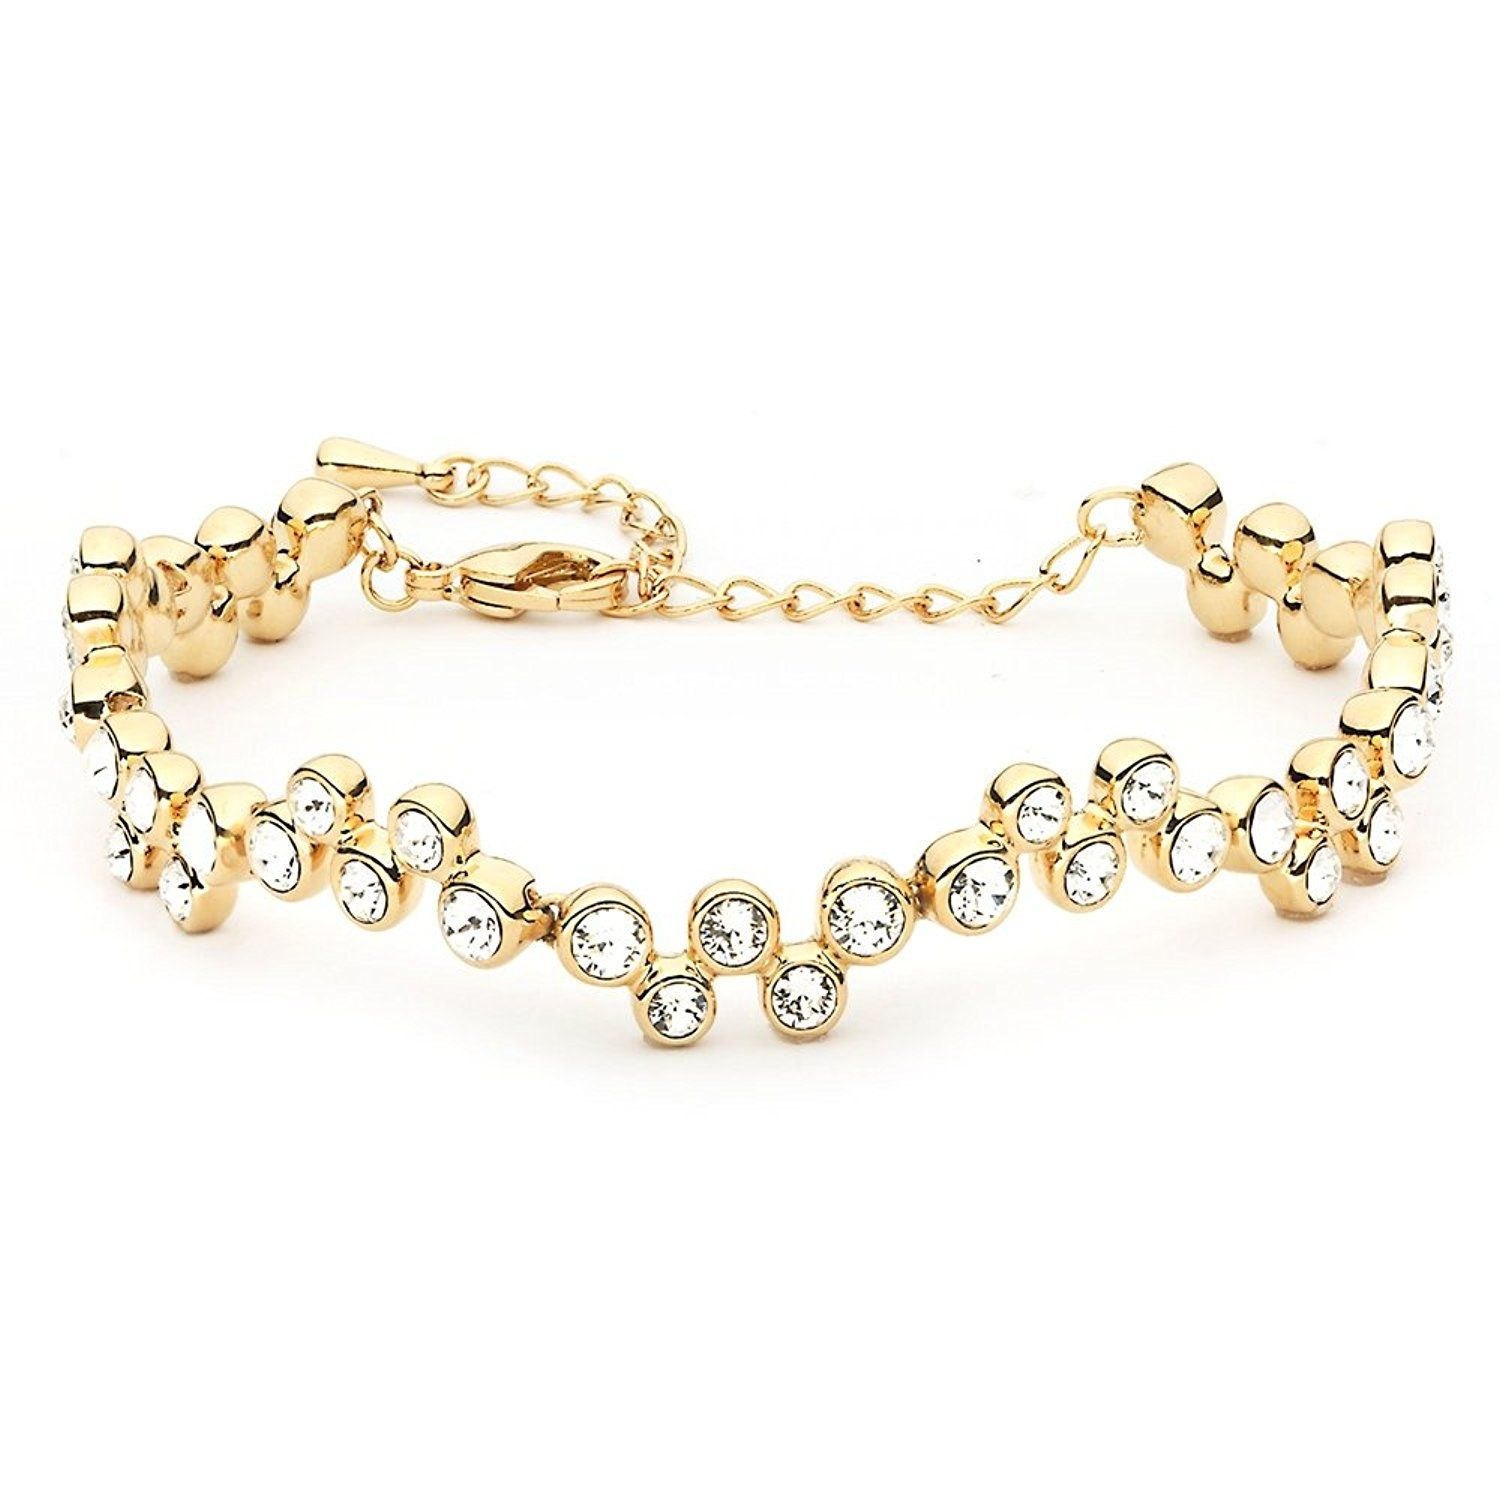 MYJS Fidelity 16k Gold Plated Tennis Bracelet with Clear Swarovski Crystals, 17+5cm Extender